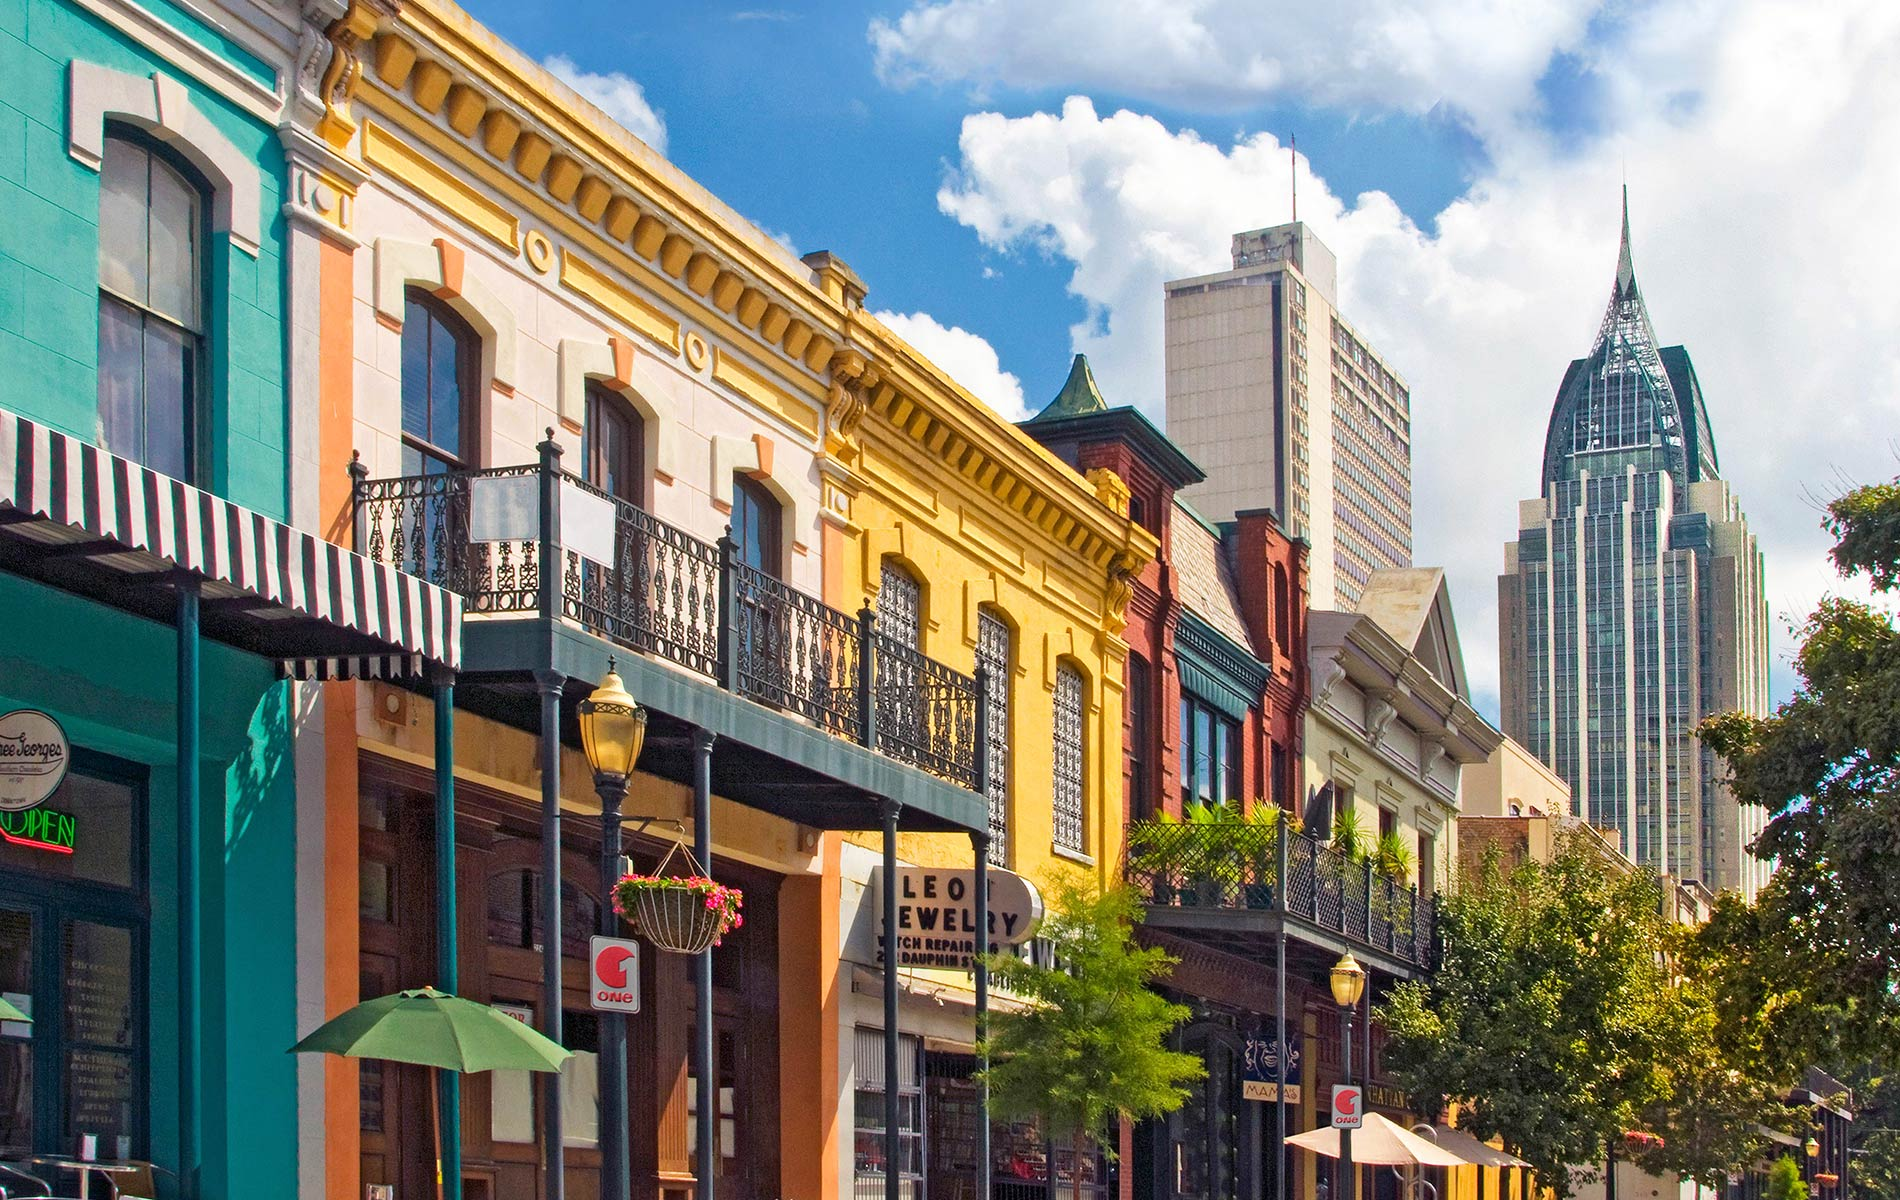 Charming and colorful historic facades of old downtown are juxtaposed against the striking modern Mobile, Alabama skyline.